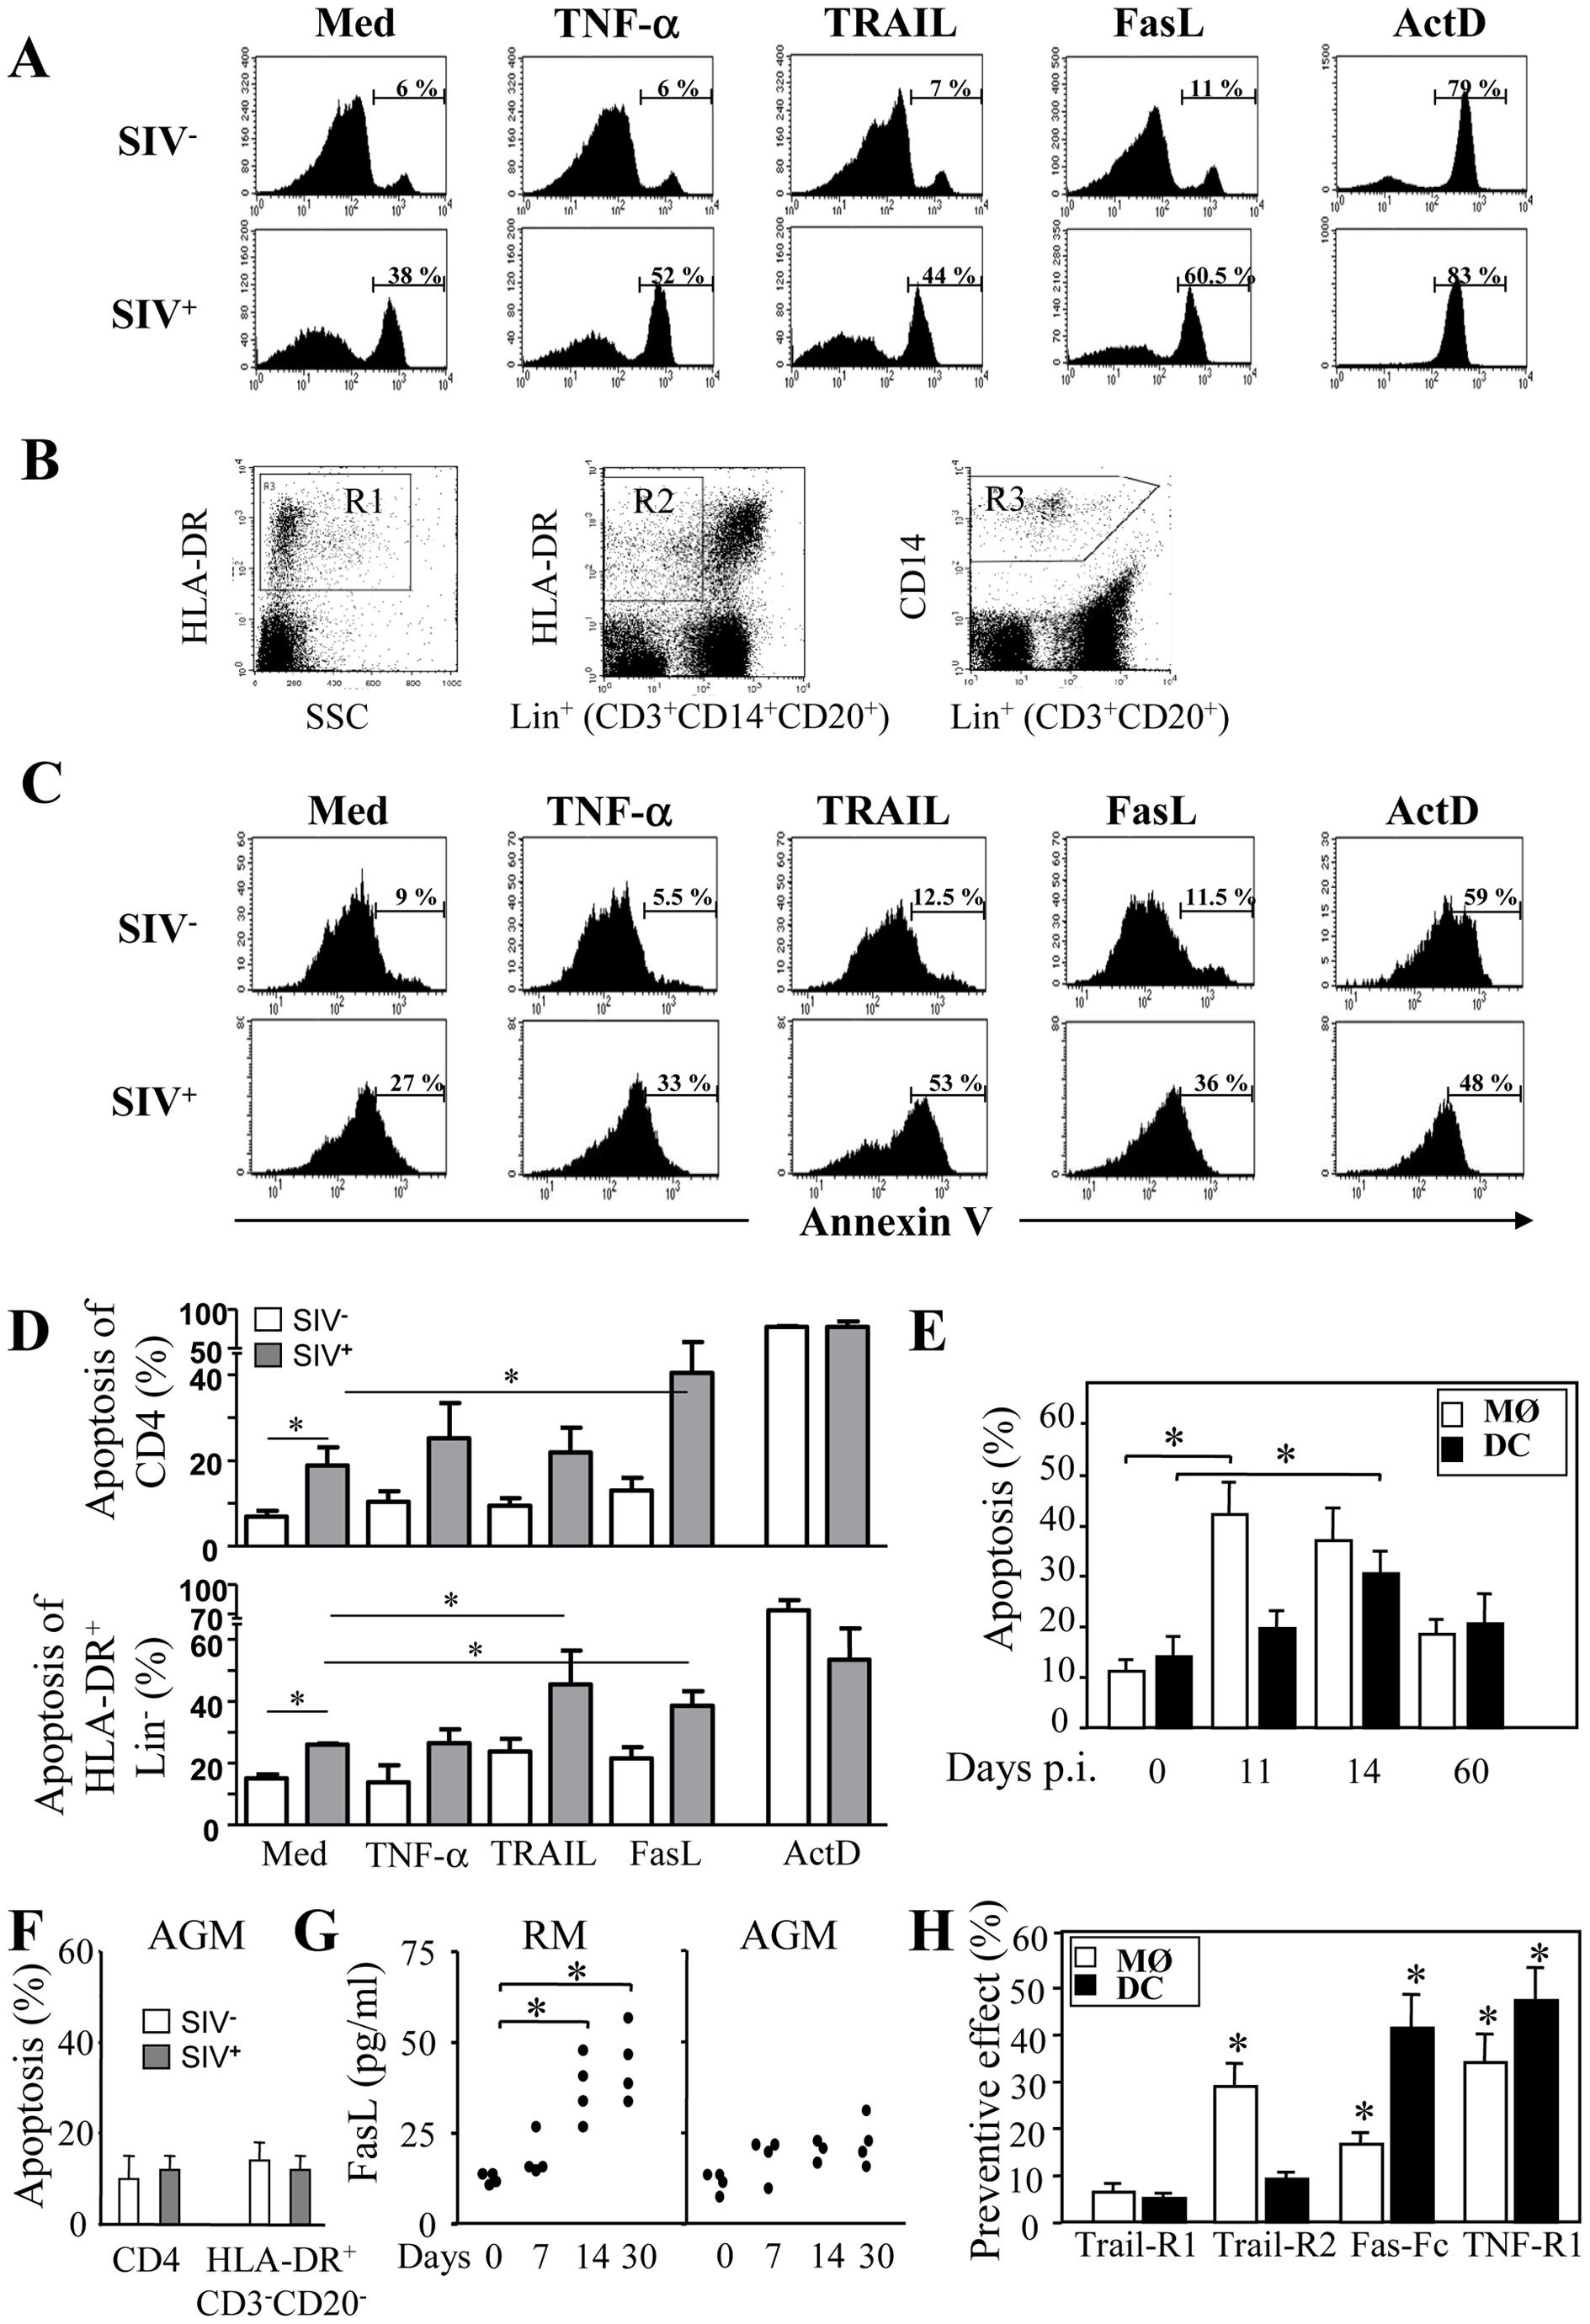 Increased apoptosis of monocytes and DCs during primary SIV infection.